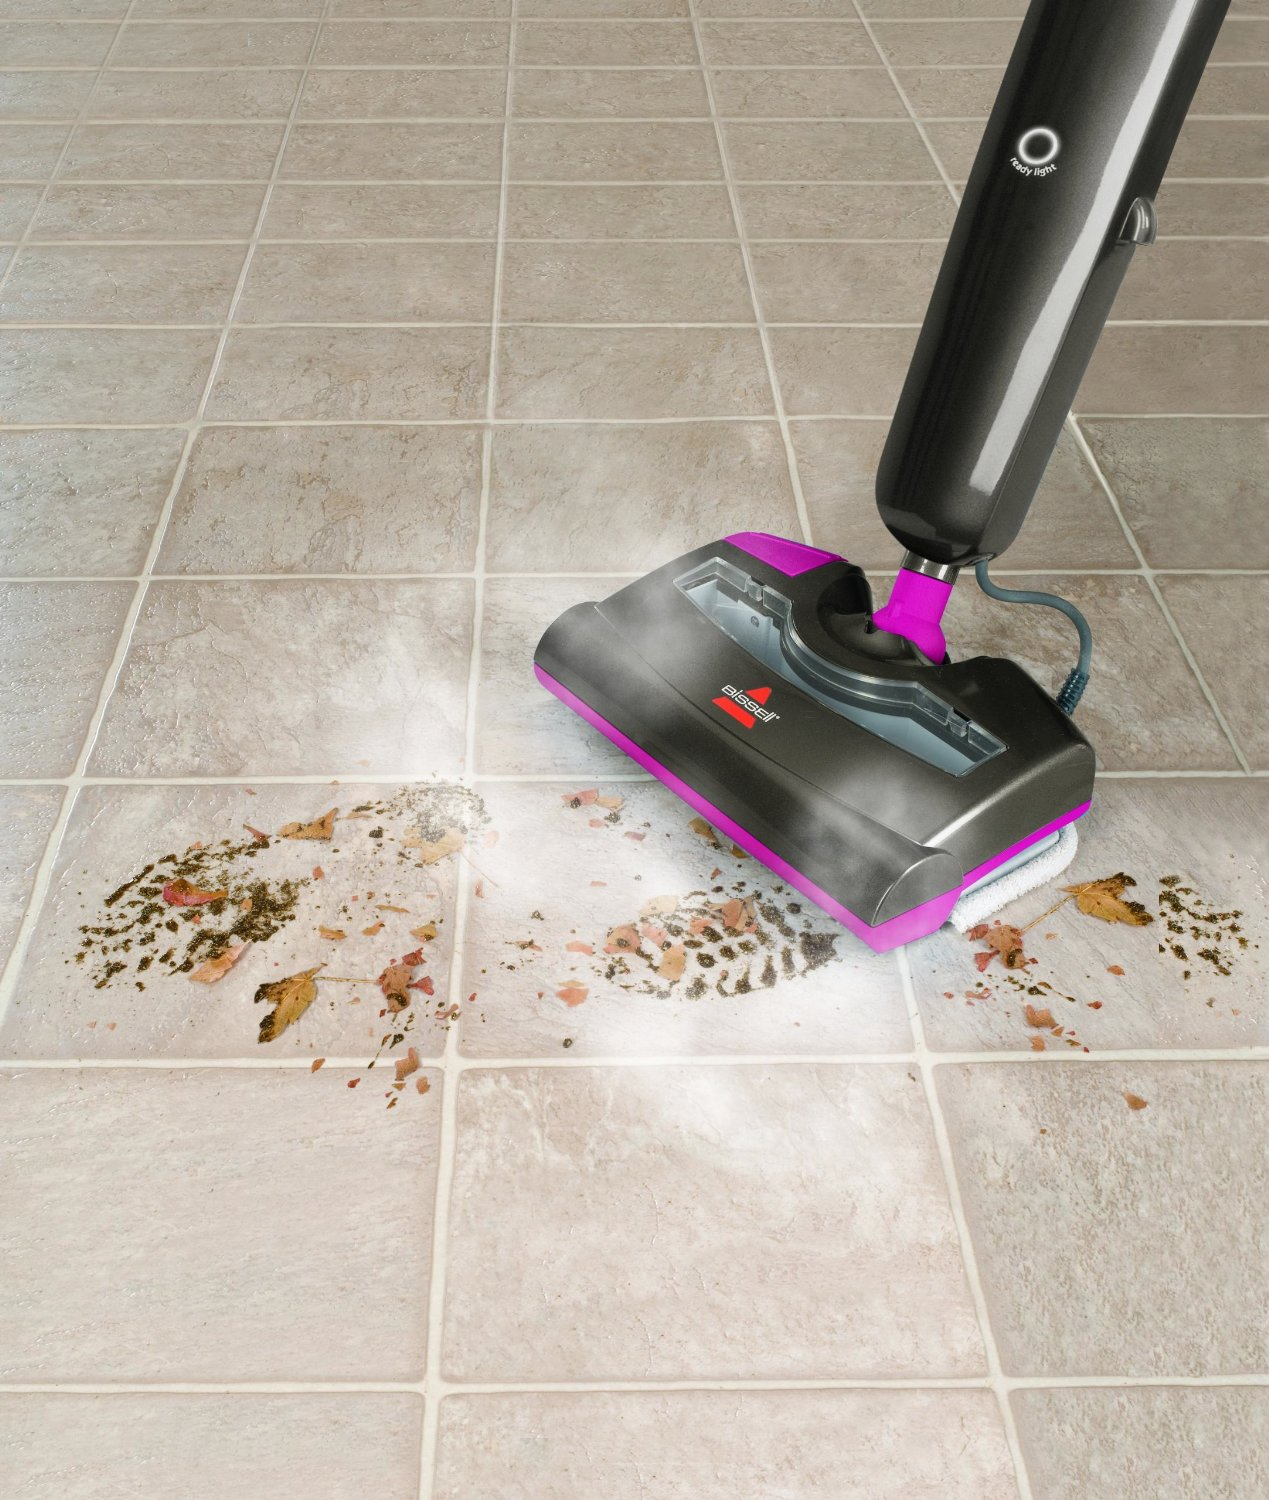 Ceramic tiles cleaner